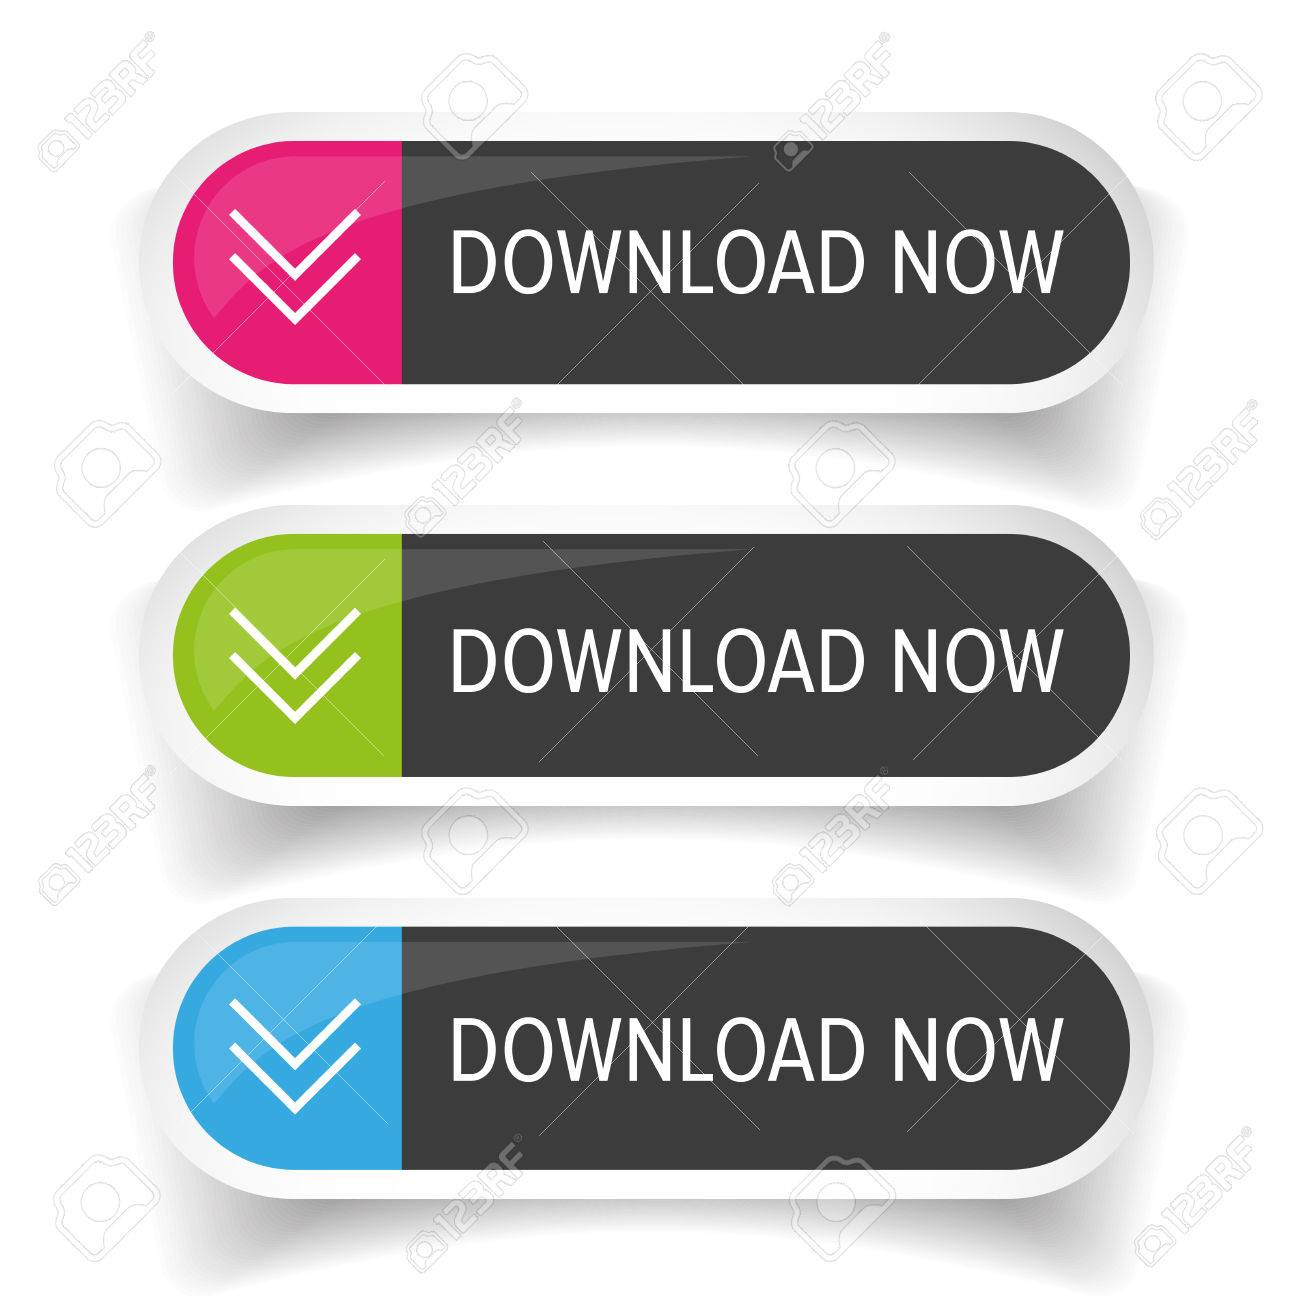 Download Now Button Set Stock Vector - 6-Download Now button set Stock Vector - 67225150-9